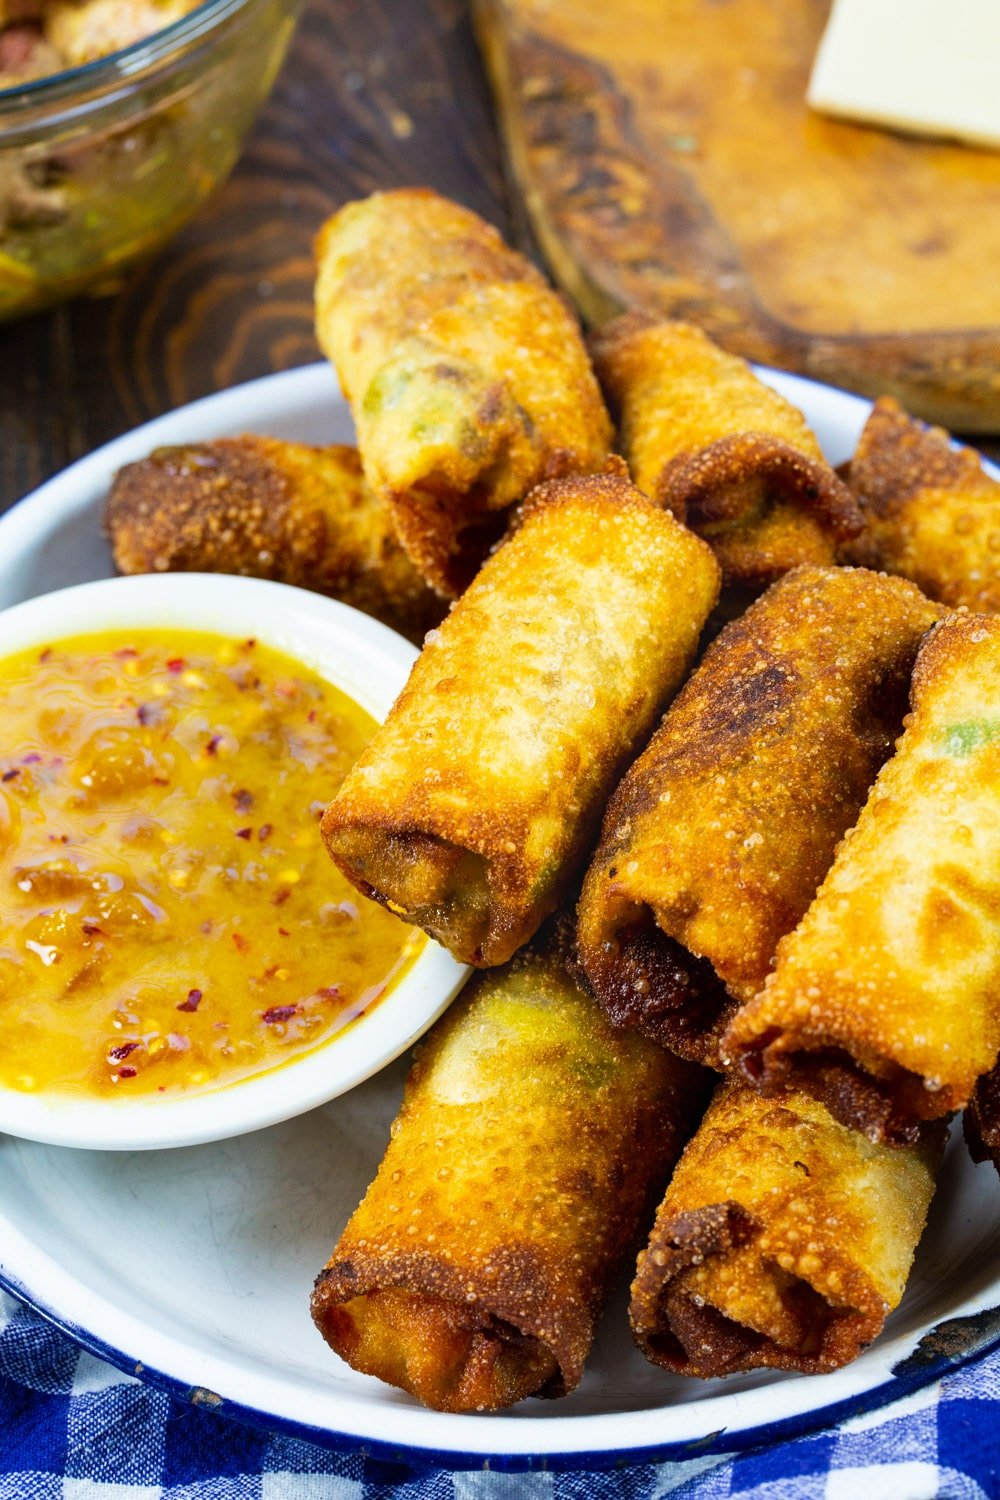 Pulled Pork Egg Rolls in serving tray with bowl of dipping sauce.